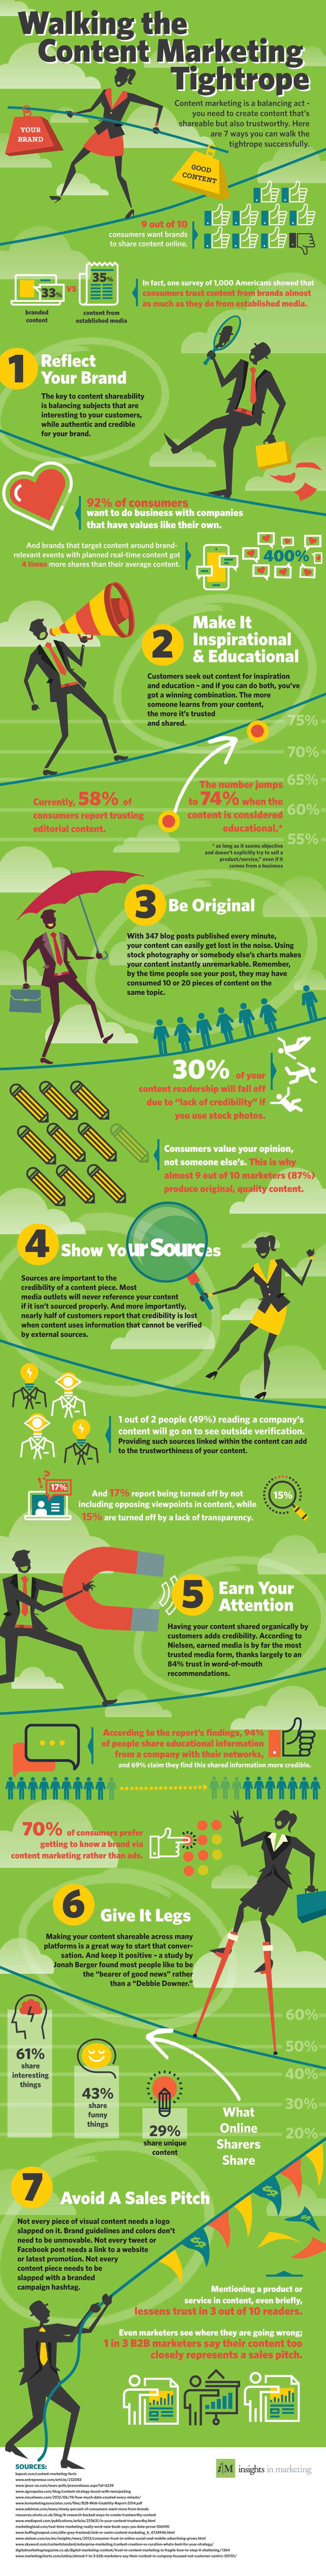 Creating Shareable Content [INFOGRAPHIC]